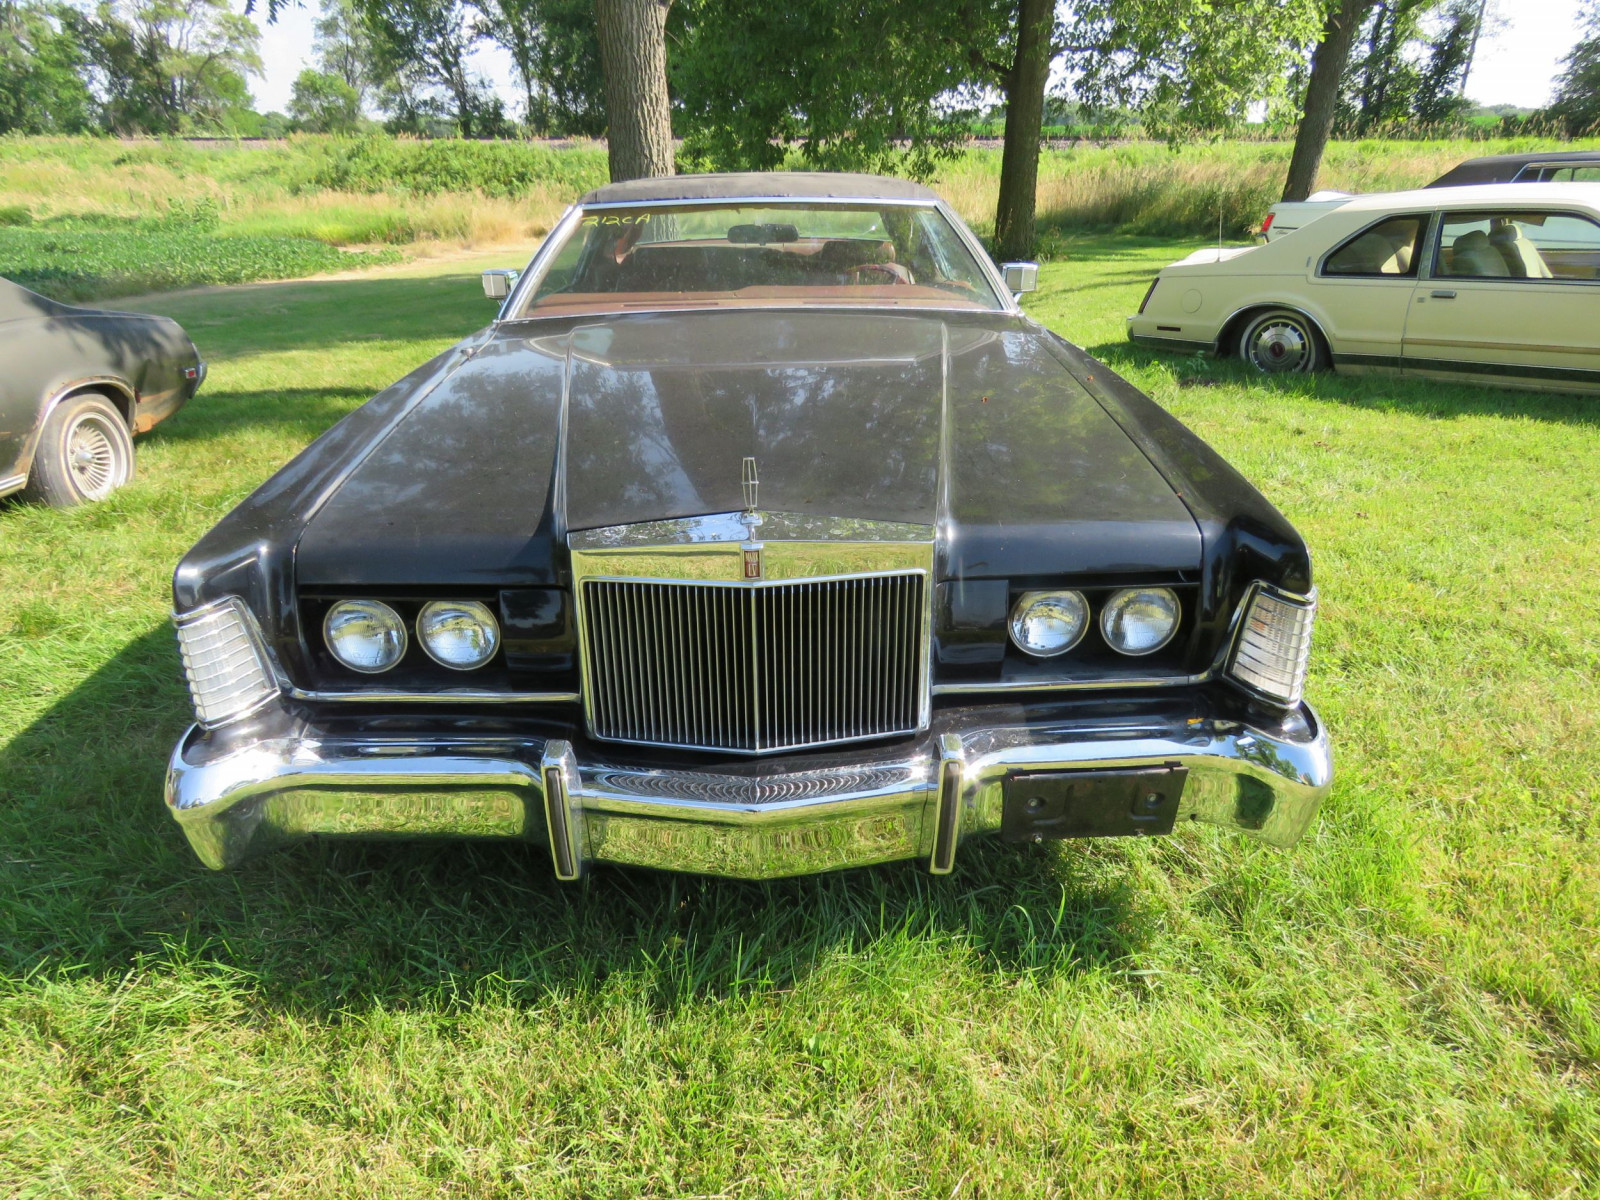 1973 Lincoln Continental Cartier Coupe - Image 2